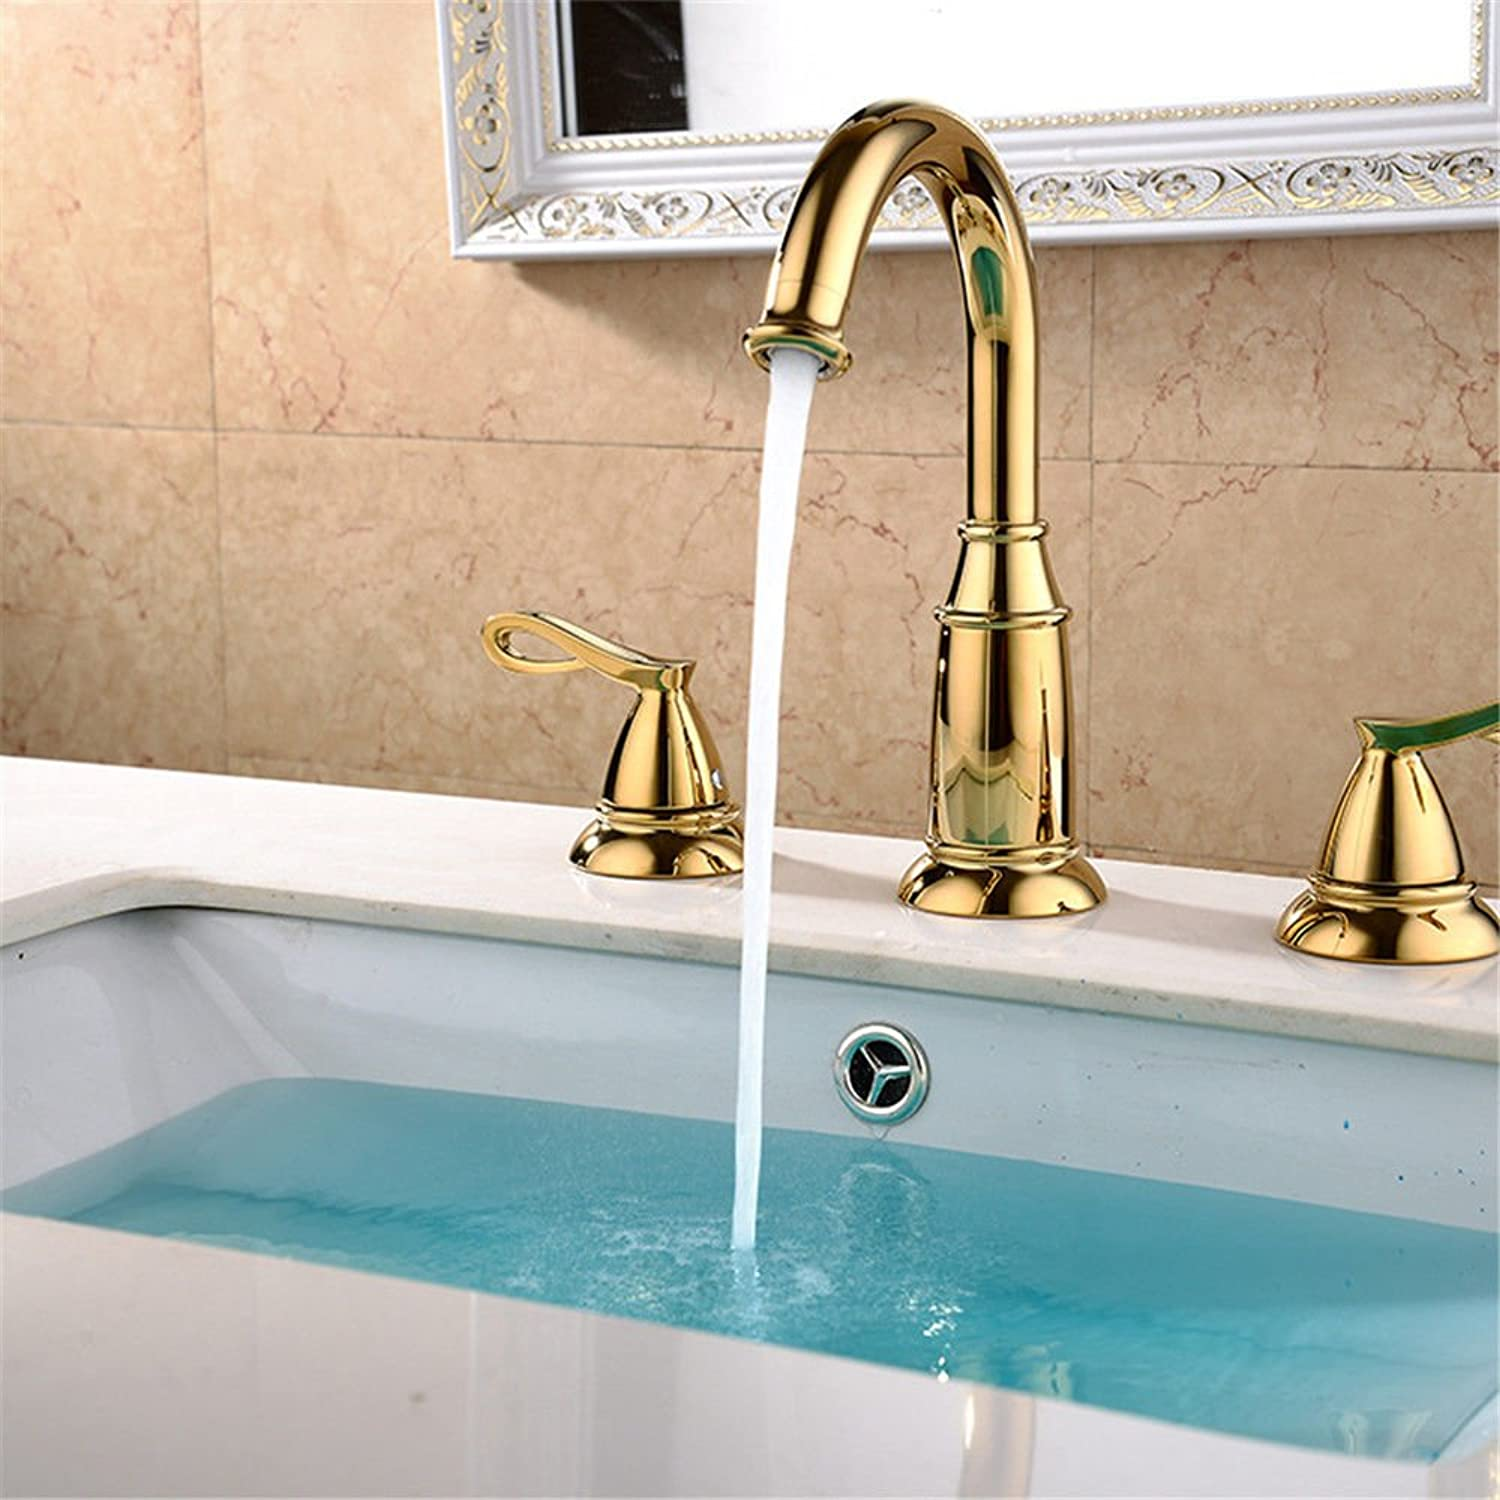 Lalaky Taps Faucet Kitchen Mixer Sink Waterfall Bathroom Mixer Basin Mixer Tap for Kitchen Bathroom and Washroom Hot and Cold Single Hole Double Handle gold Copper Antique Seat